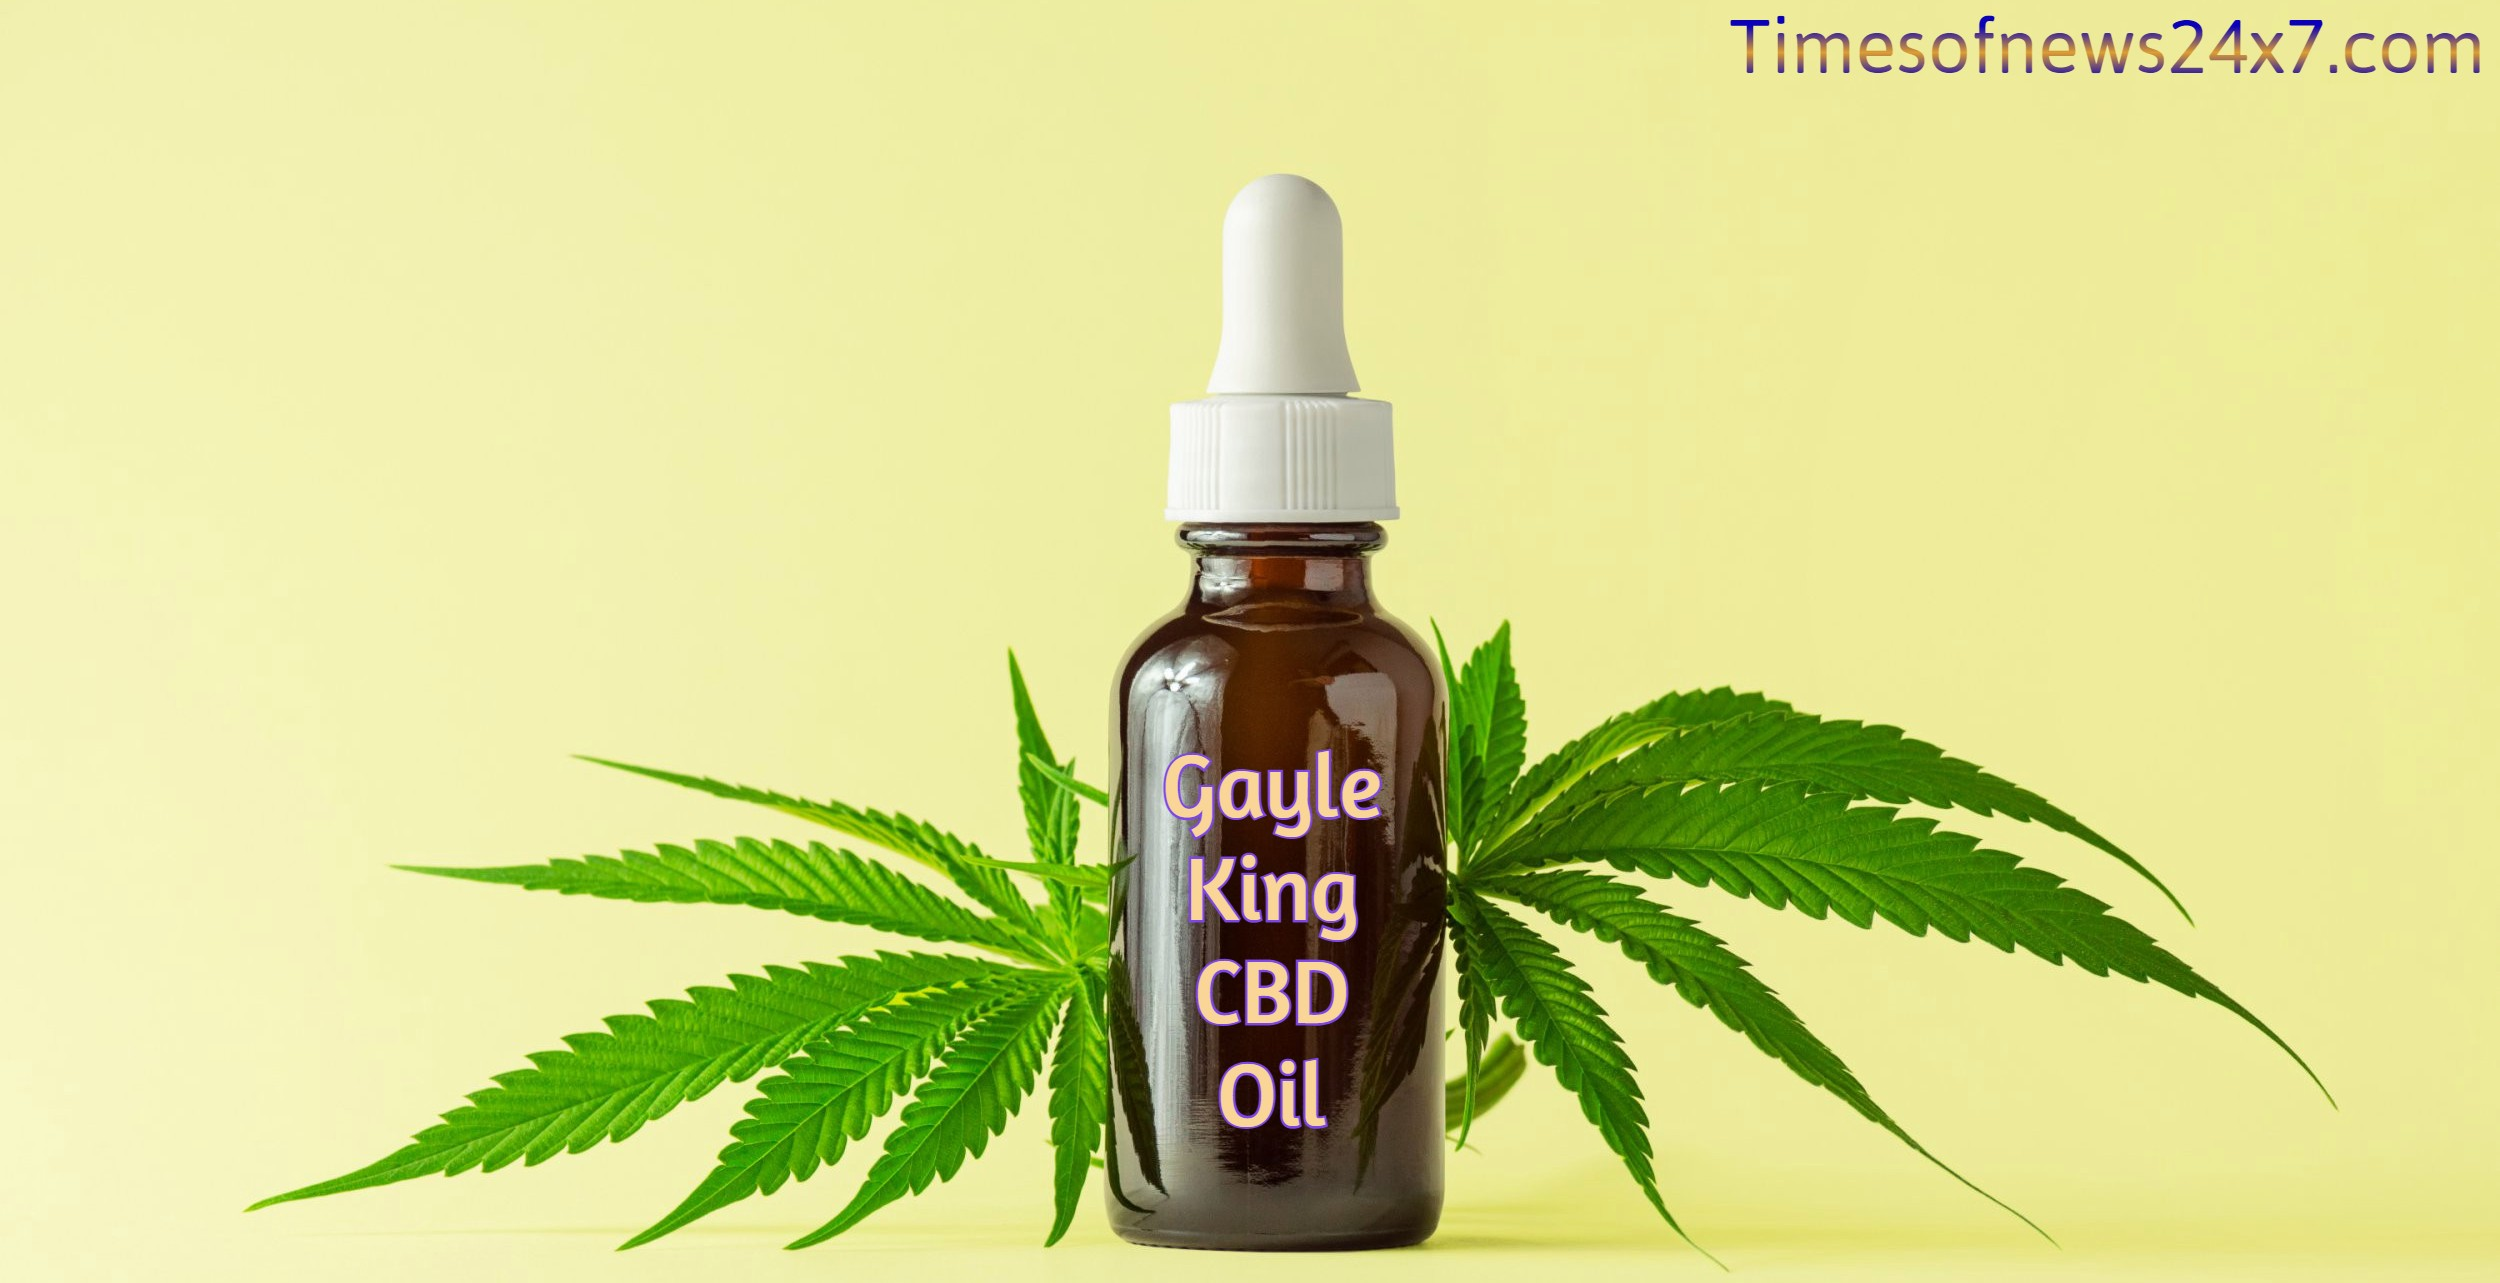 Gayle King CBD Oil